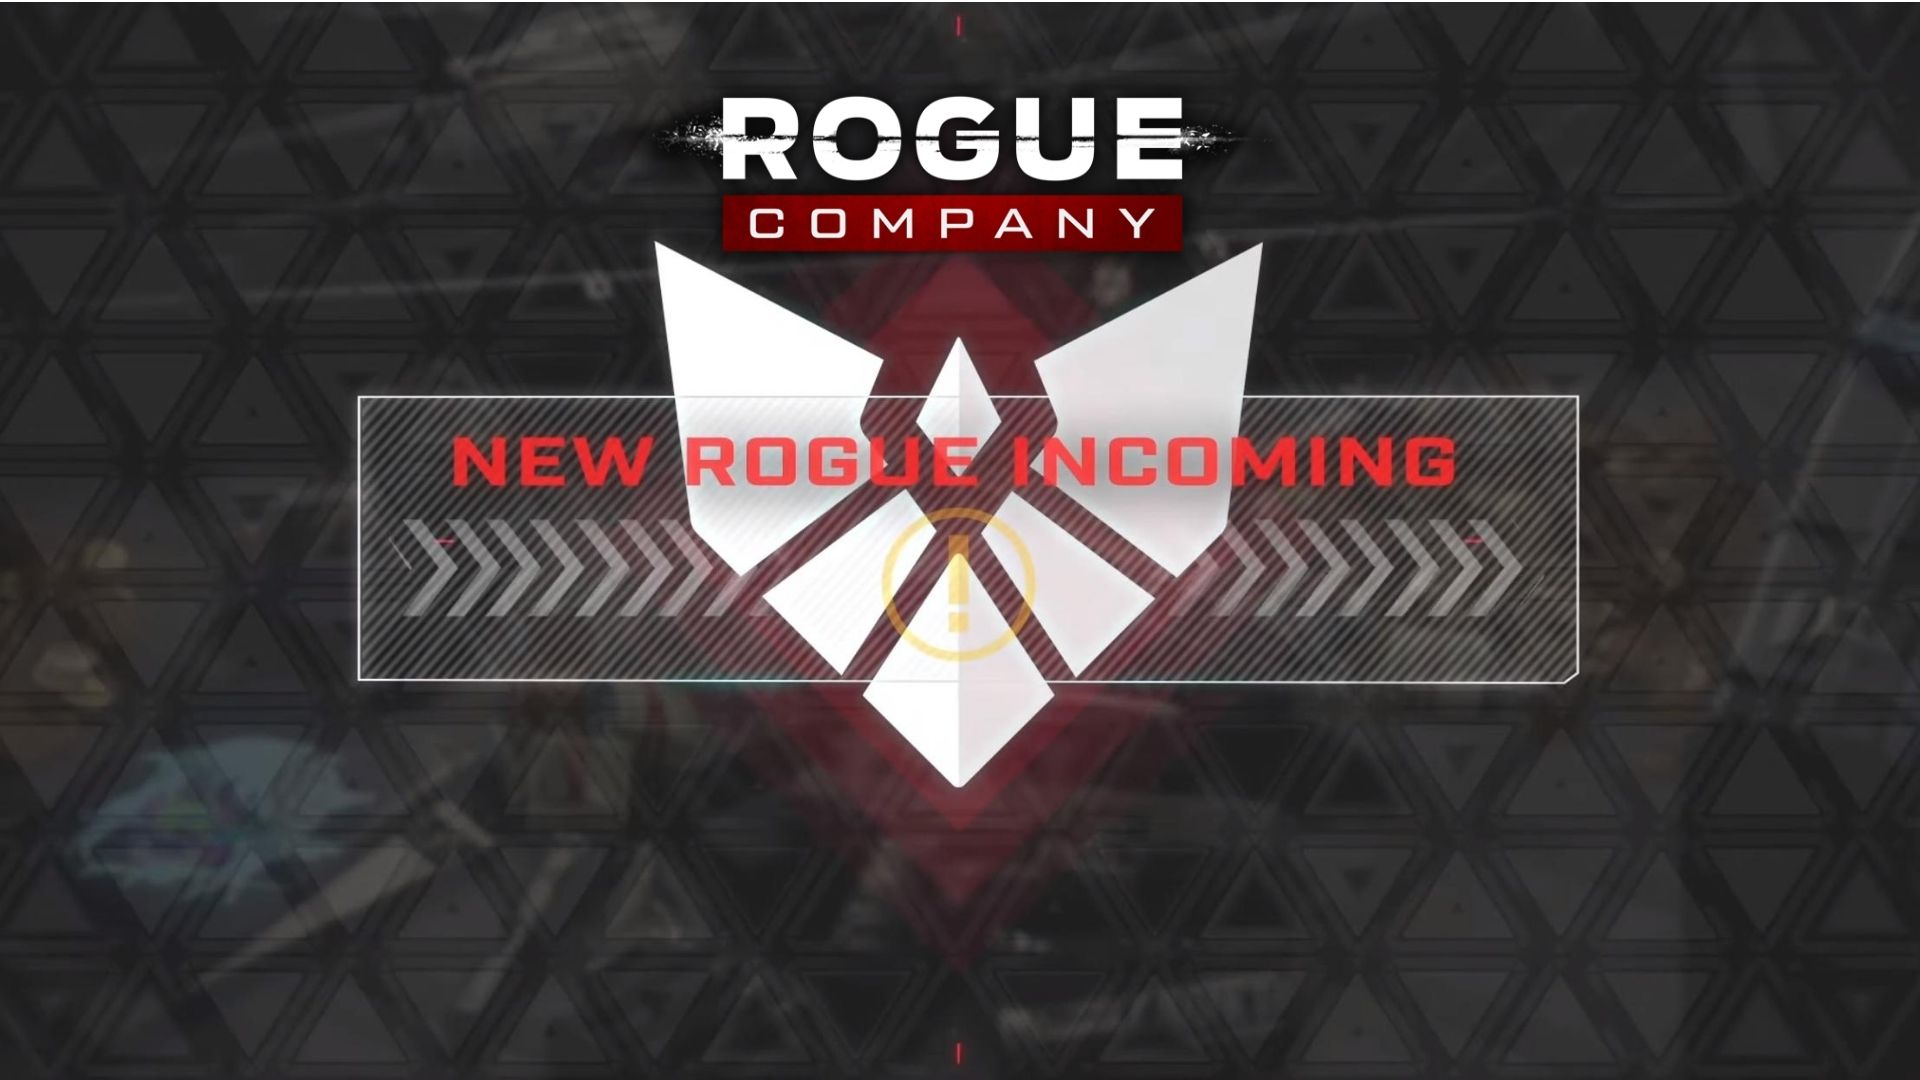 Rogue Company features